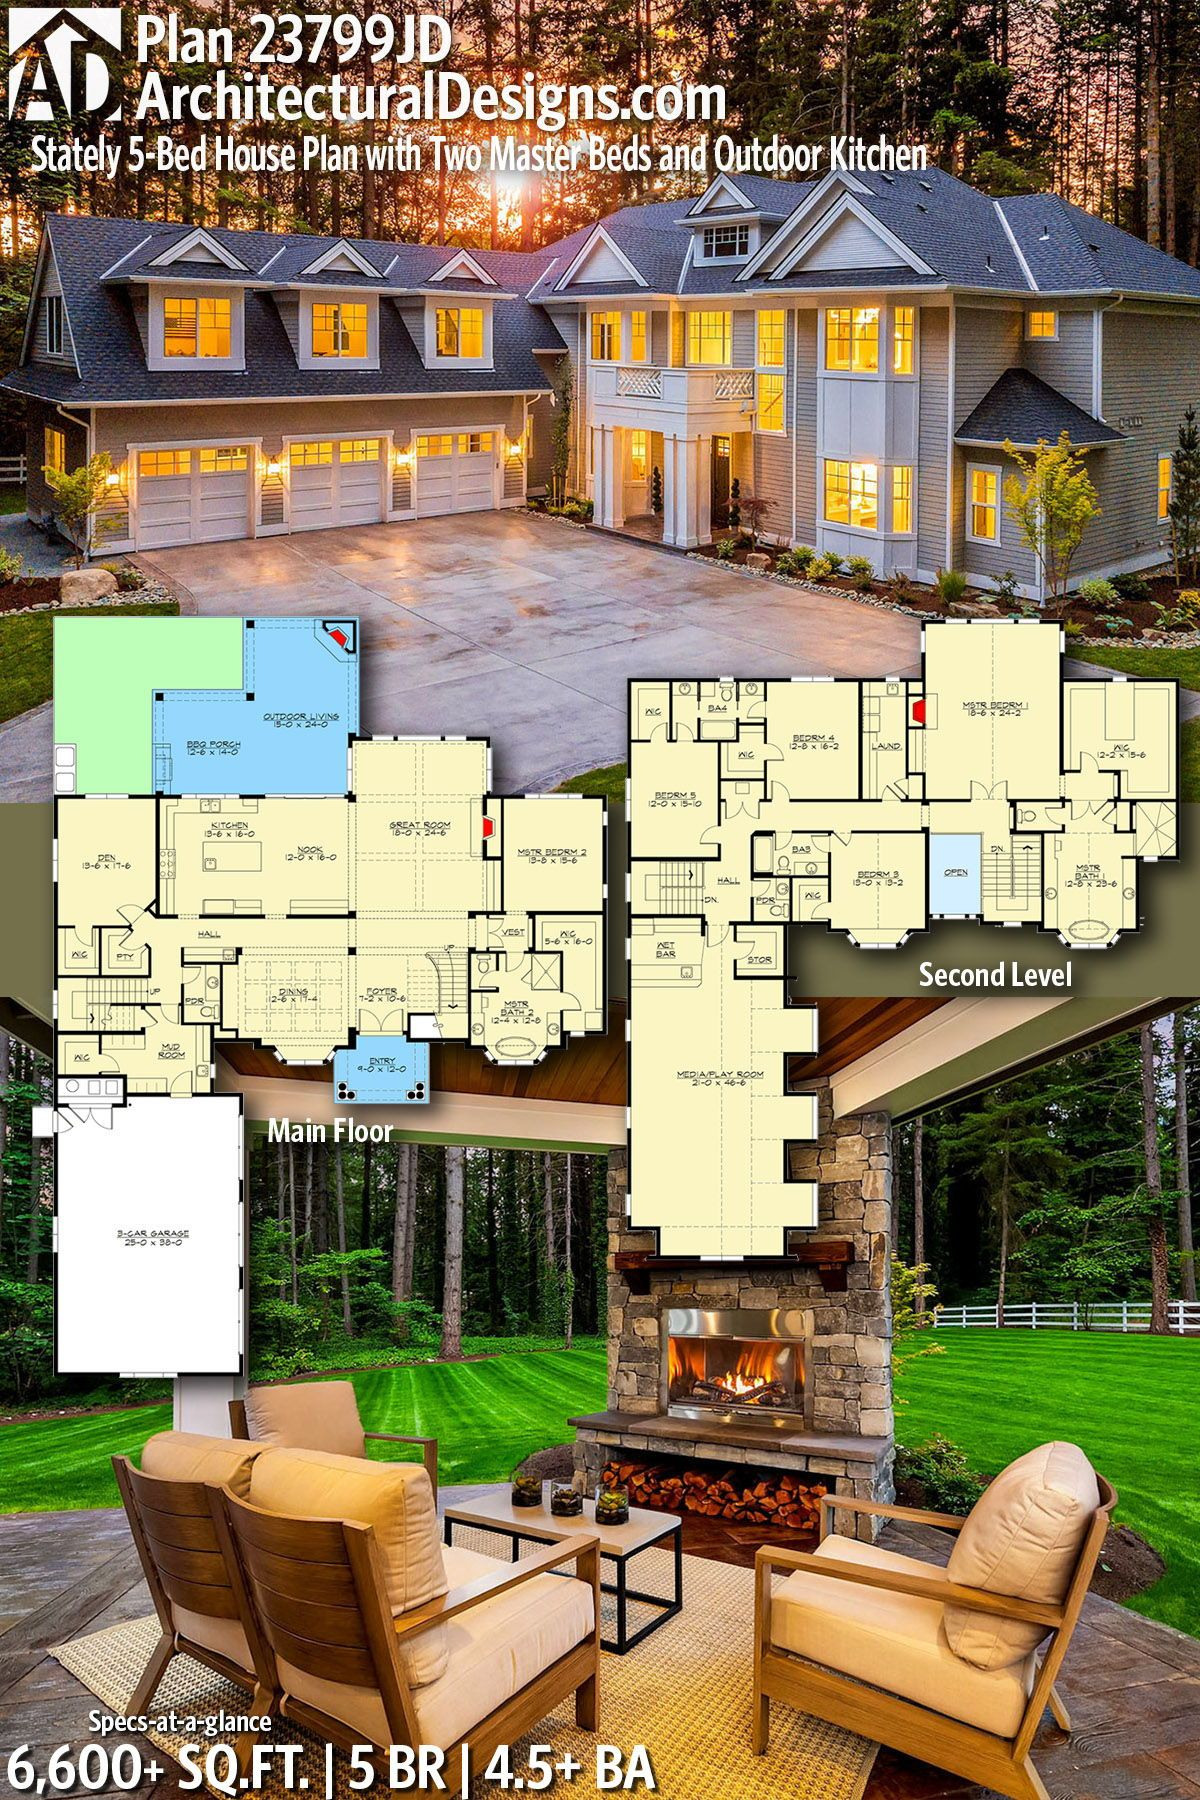 Architectural designs home plan jd gives you bedrooms baths and also rh pinterest